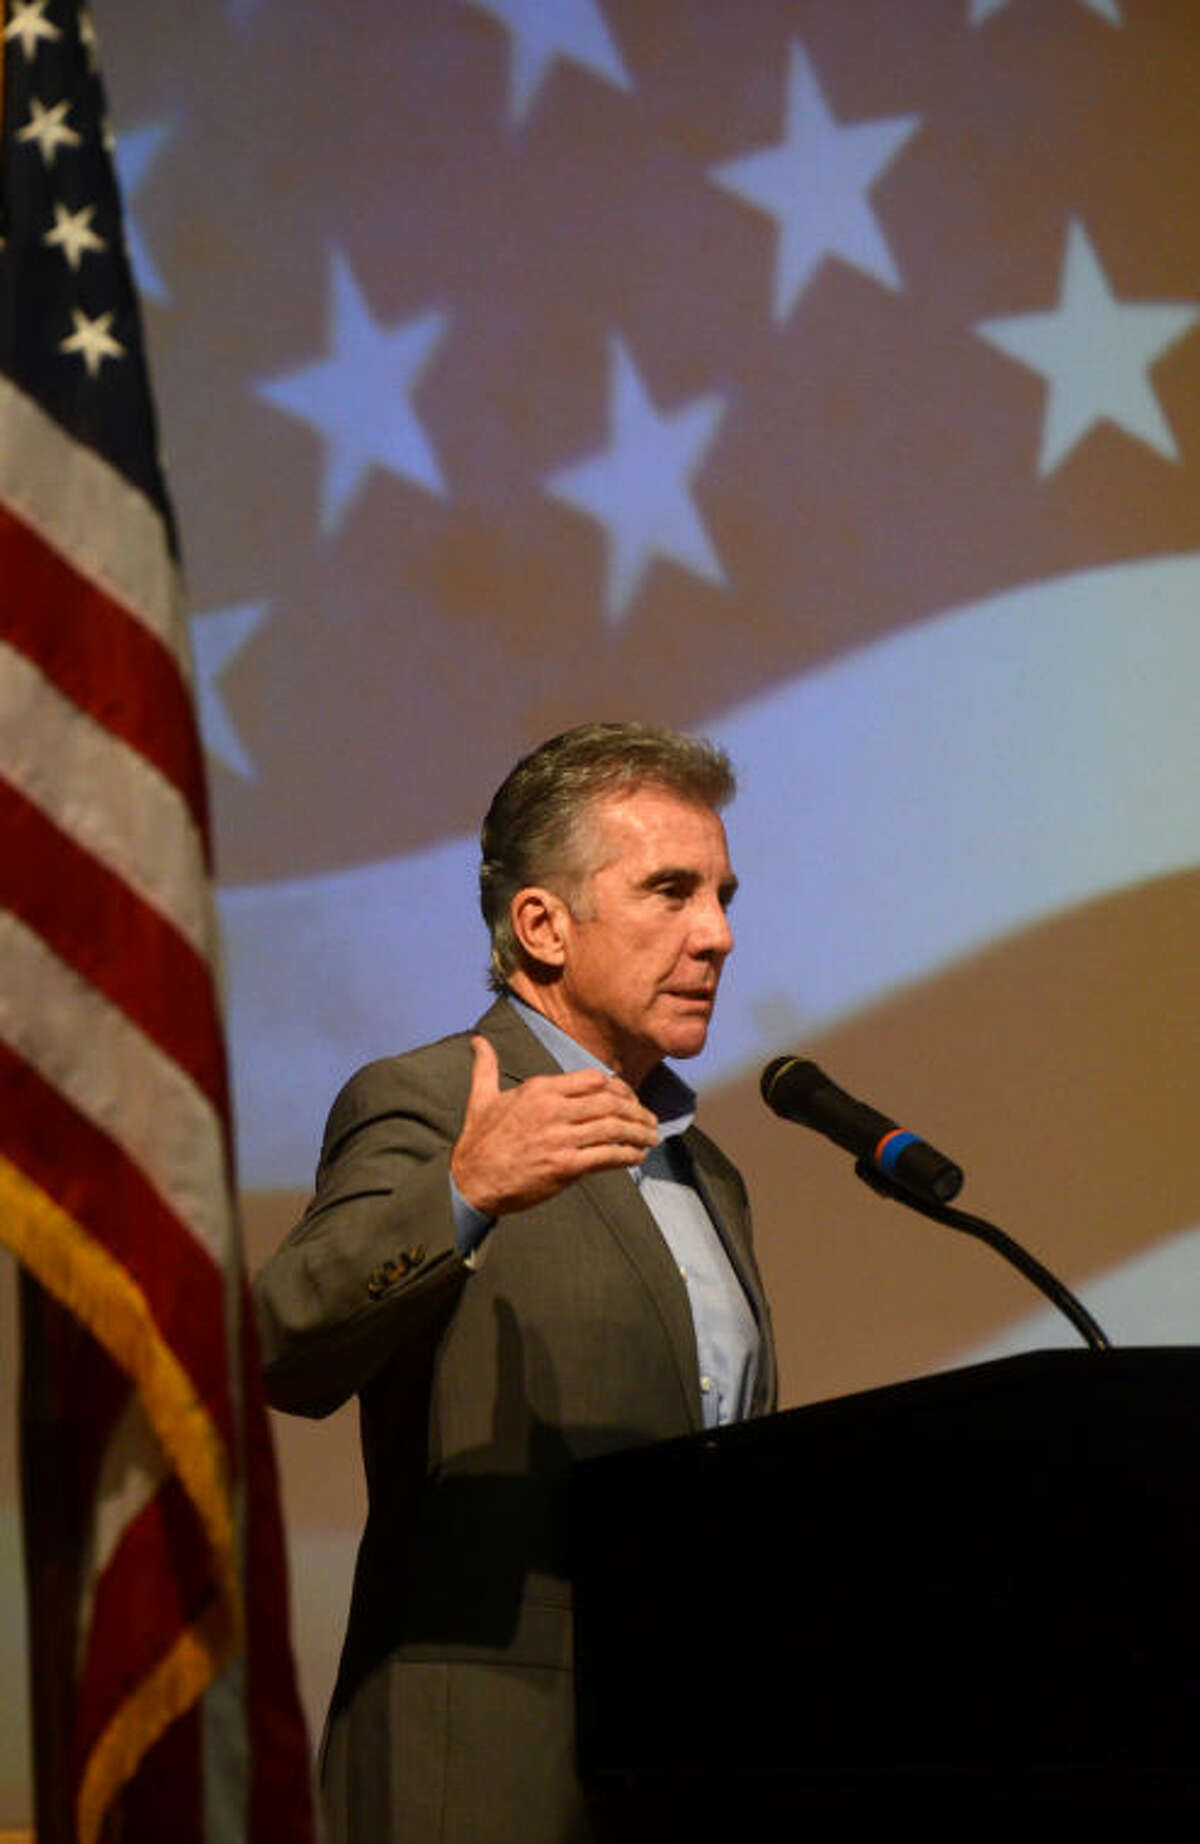 """John Walsh of """"America's Most Wanted"""" speaks during the 200 Club Law Enforcement Appreciation Banquet on Tuesday at the Midland Center. James Durbin/Reporter-Telegram"""